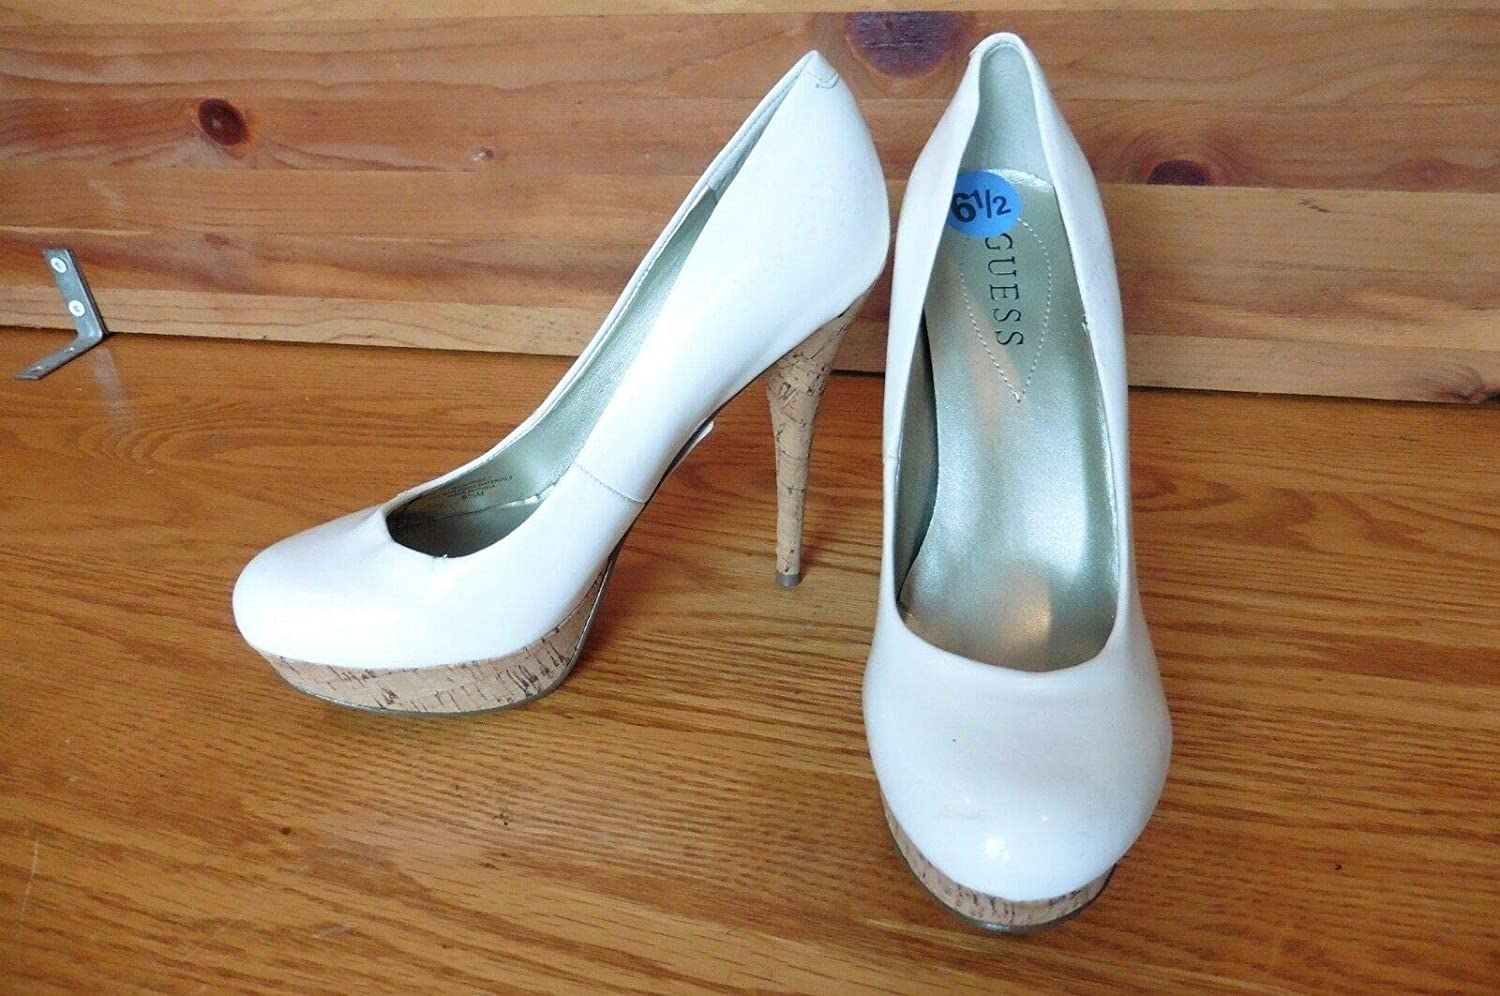 GUESS White cork high heels patent leather size 6.5 shoes